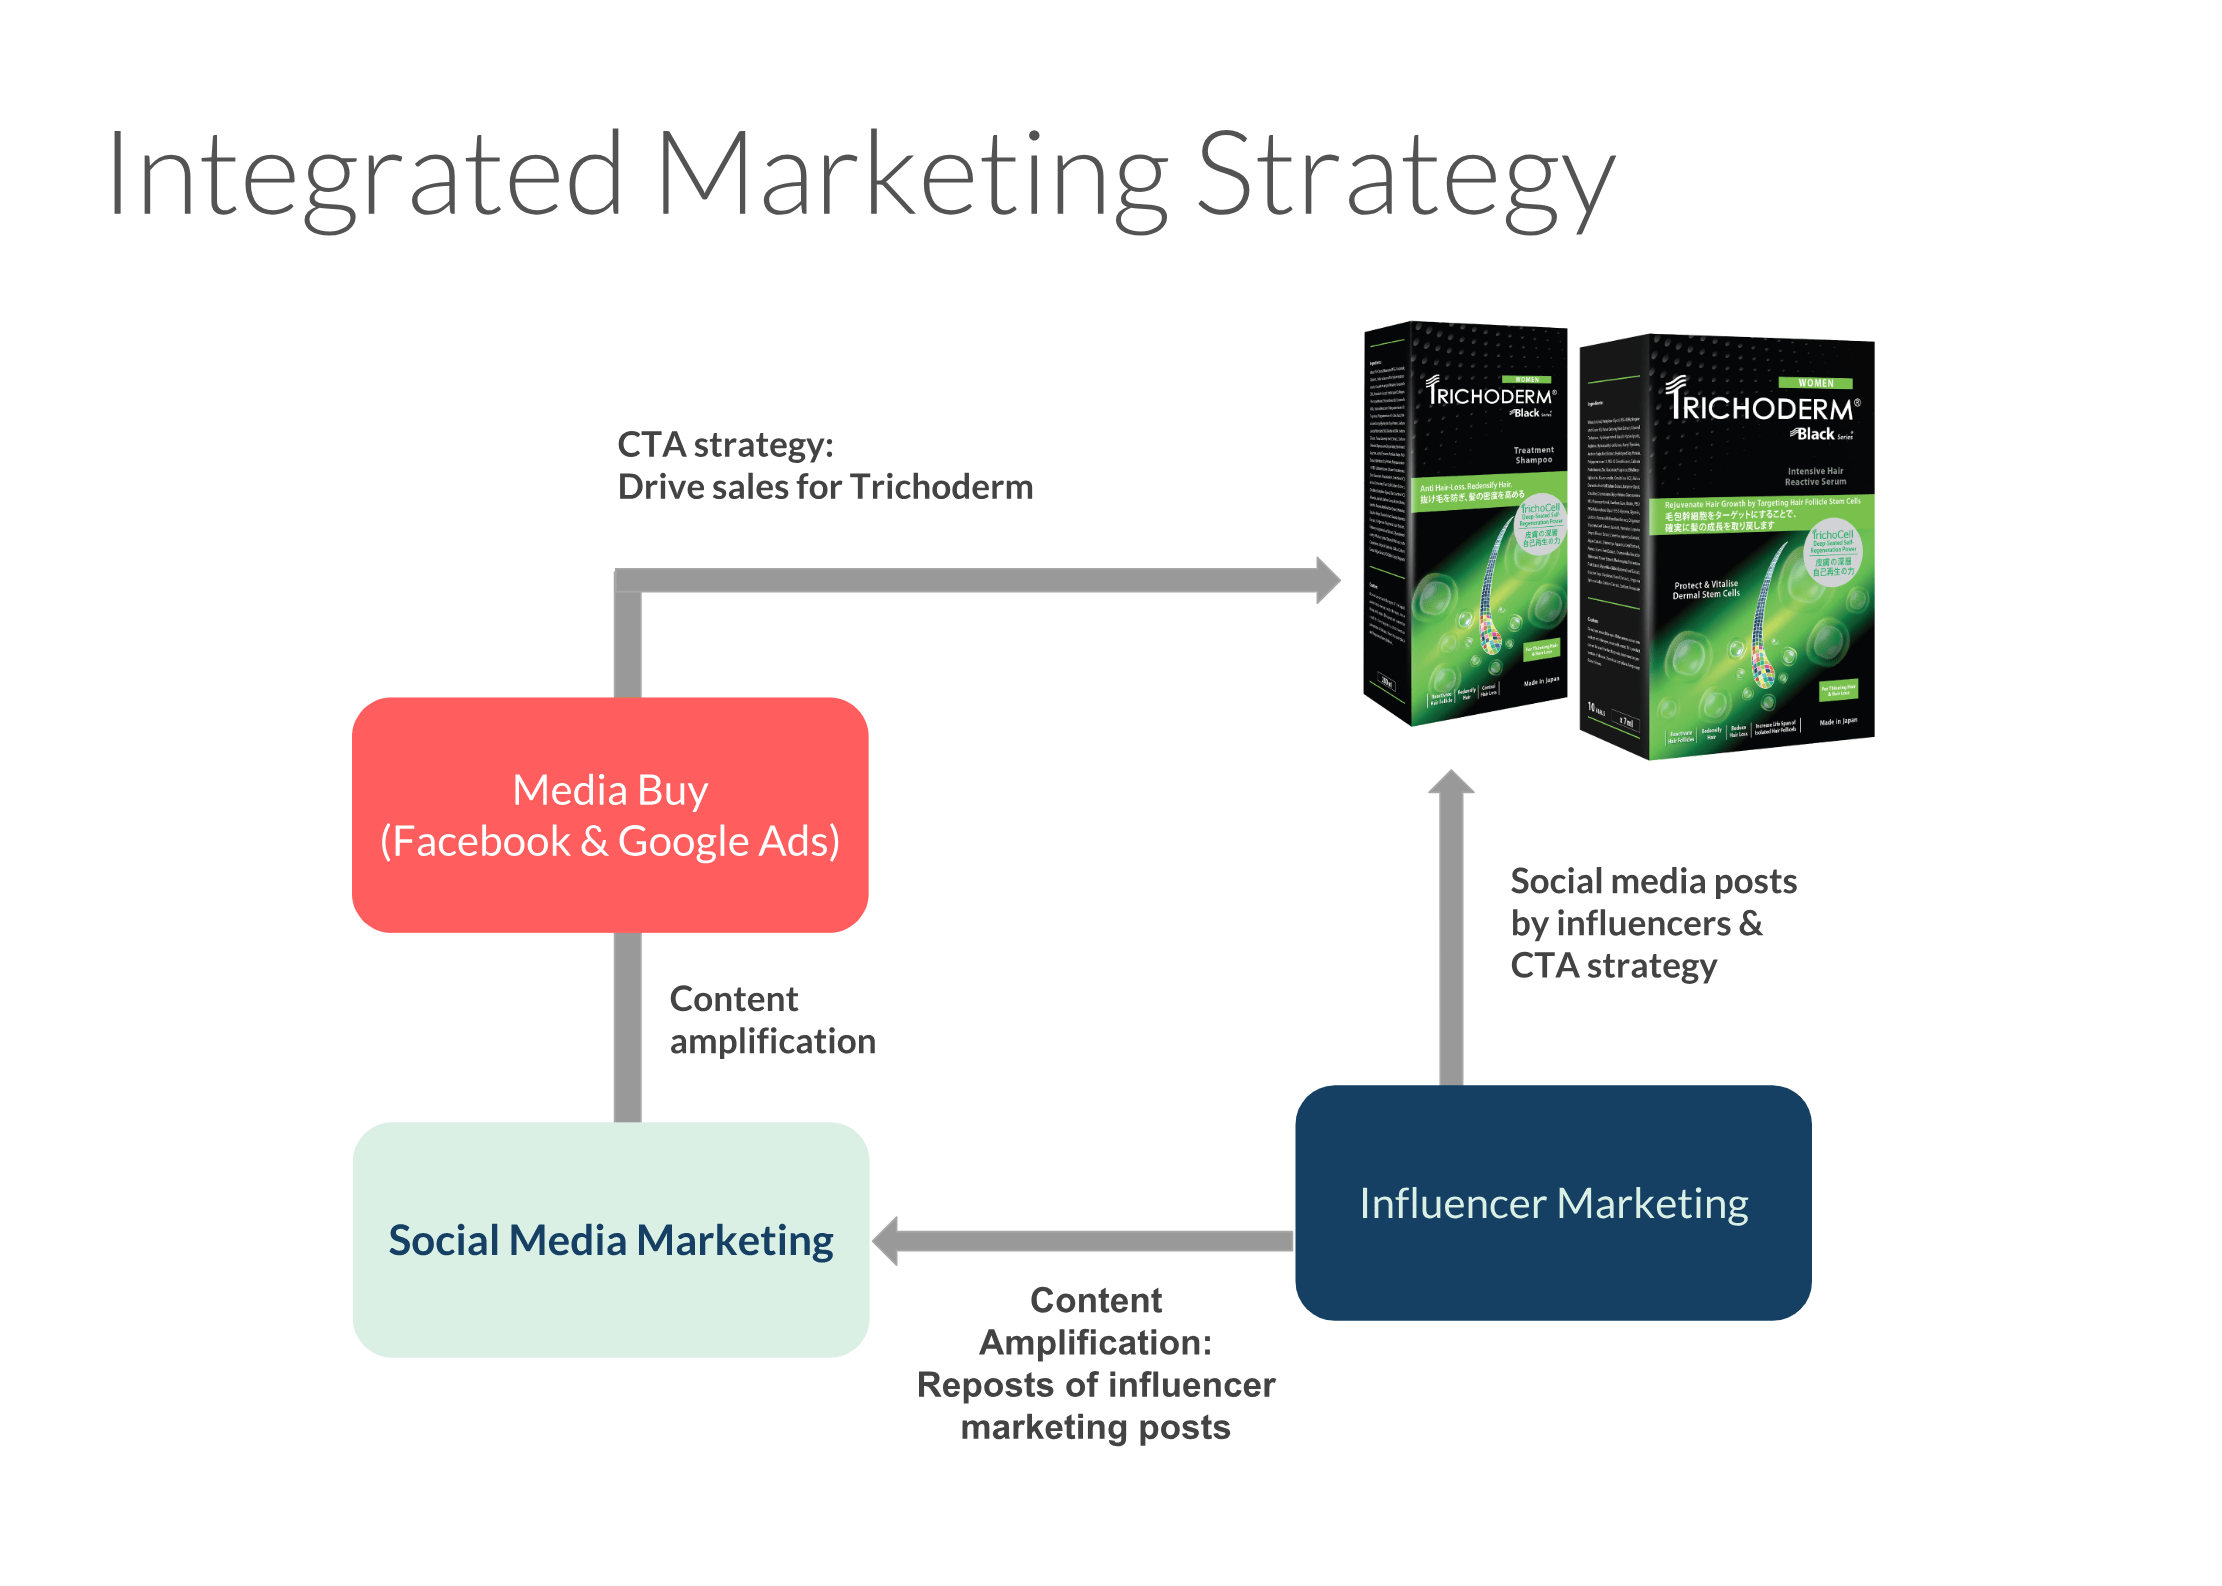 social media marketing - #HookedOnTrichoderm Influencer Marketing Campaign - Hashmeta